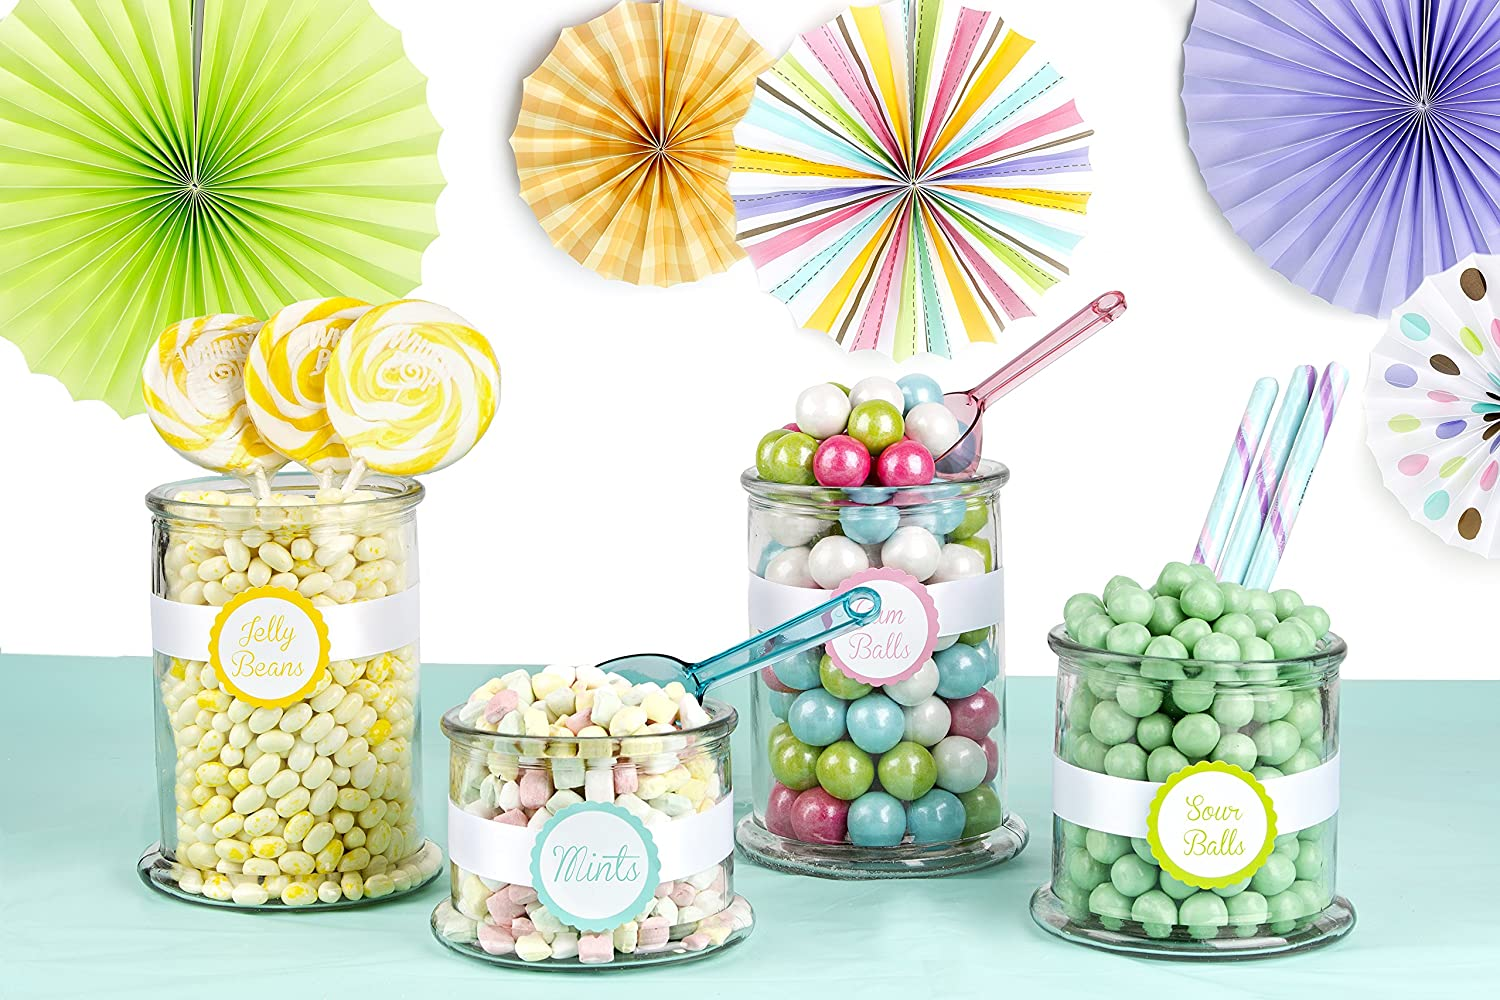 Diy Baby Shower Candy Buffet Kit Pastel Colors Feeds 20 25 People Oh Nuts